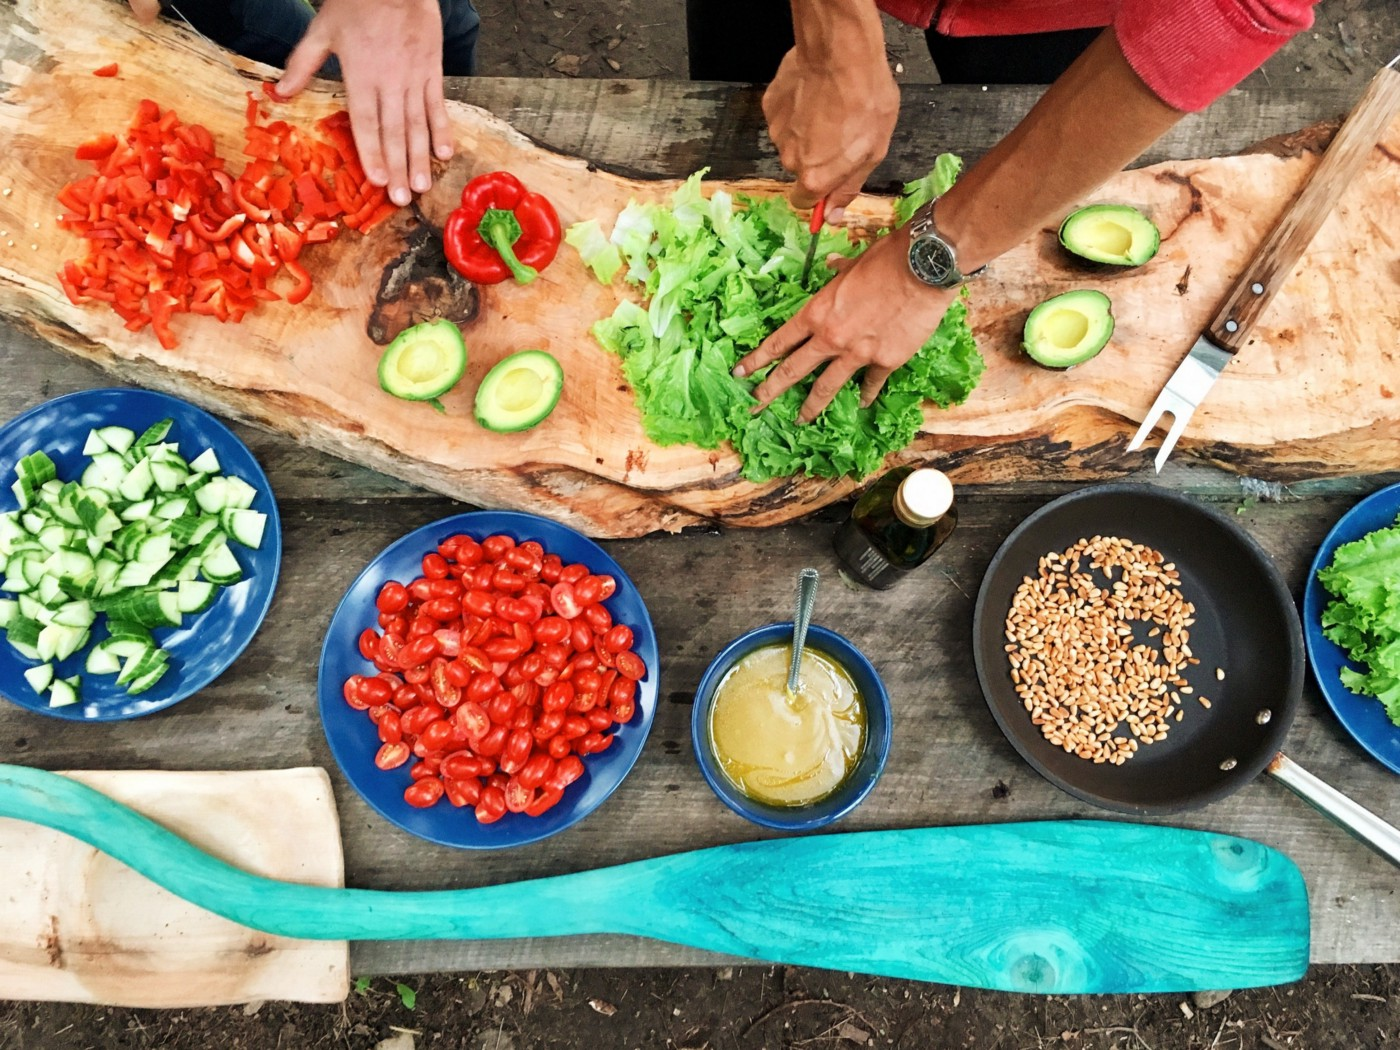 Two people preparing a meal with bright colored fresh vegetables